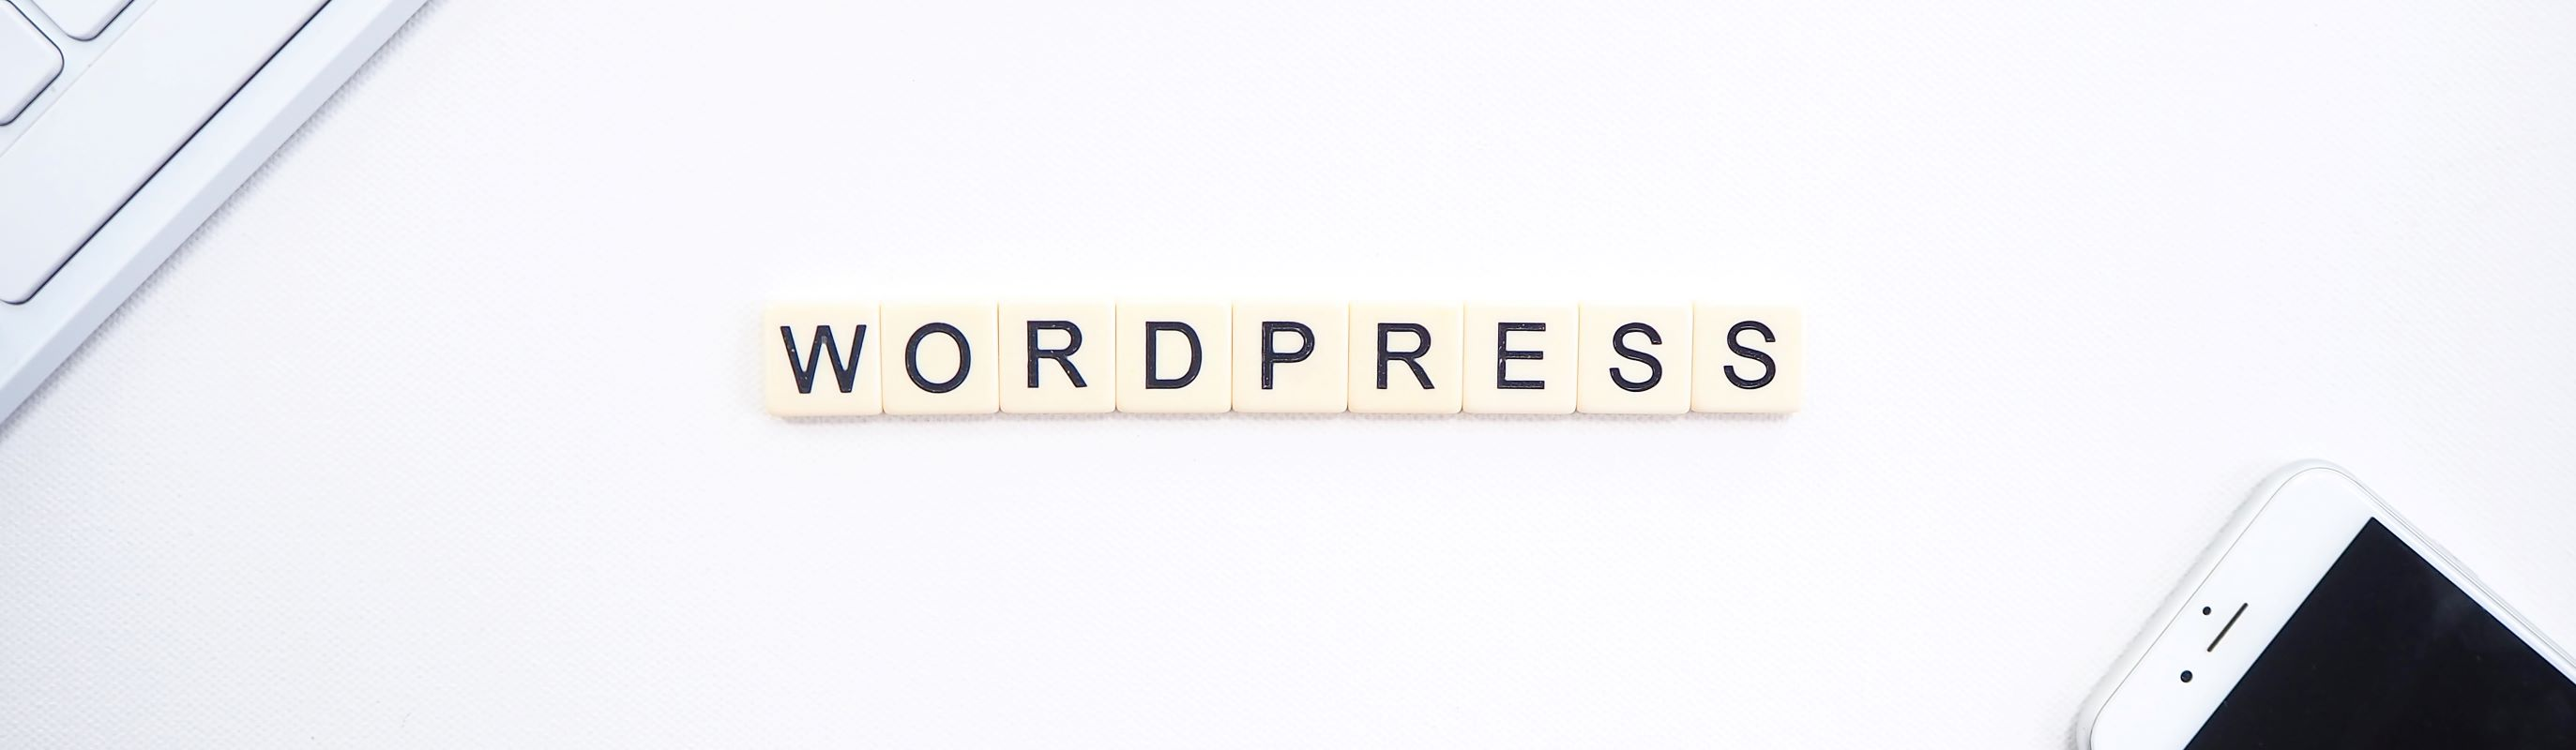 WordPress in Scrabble-letters